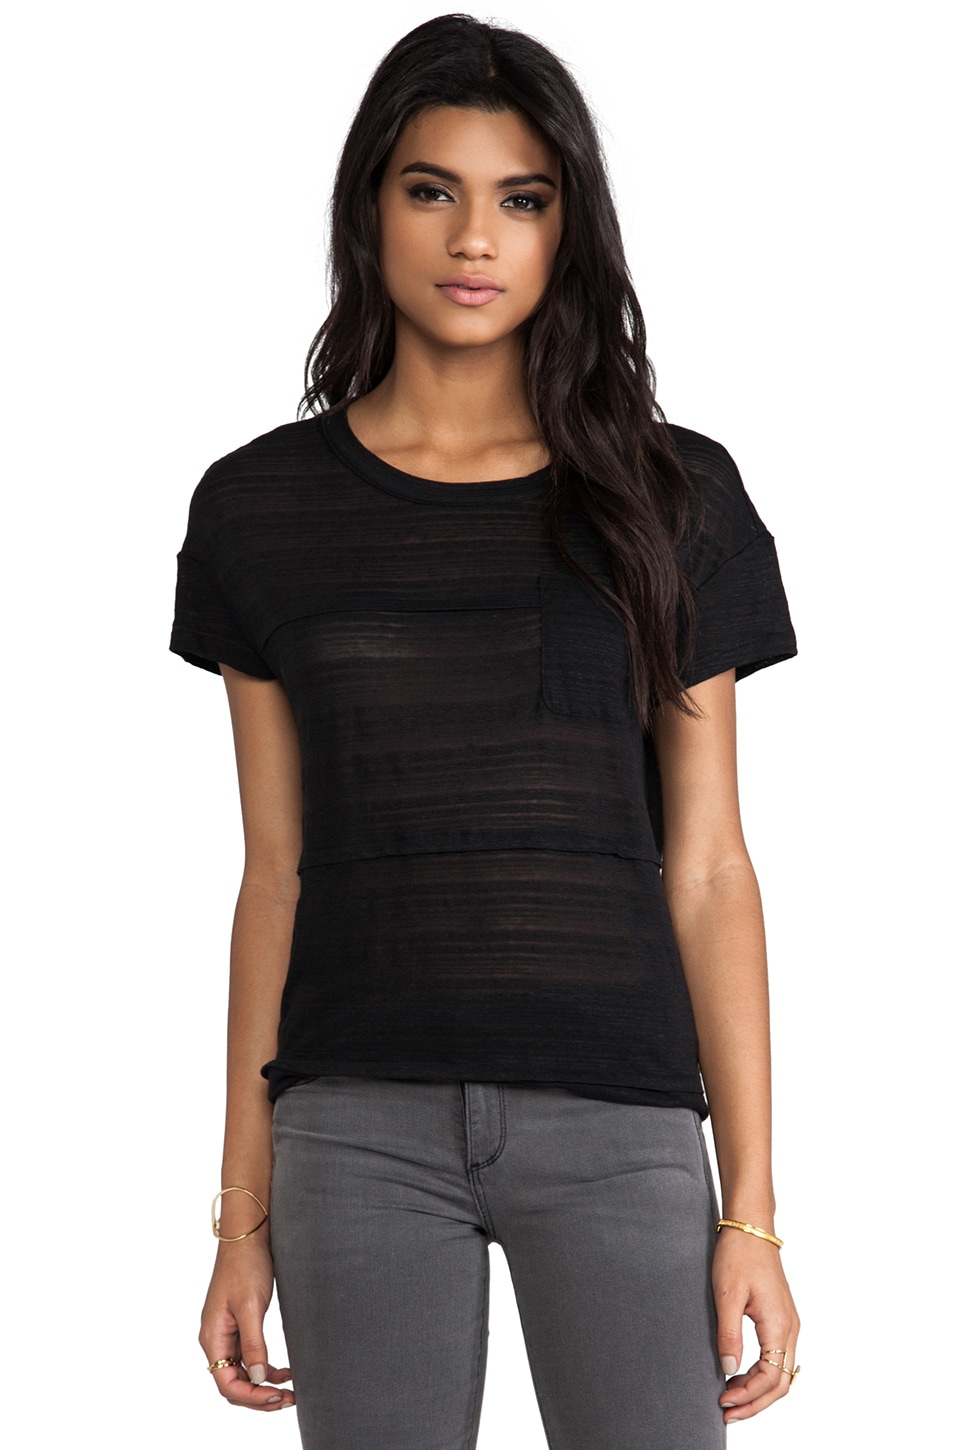 Marc by Marc Jacobs Eloise Ombre Jersey Tee in Black